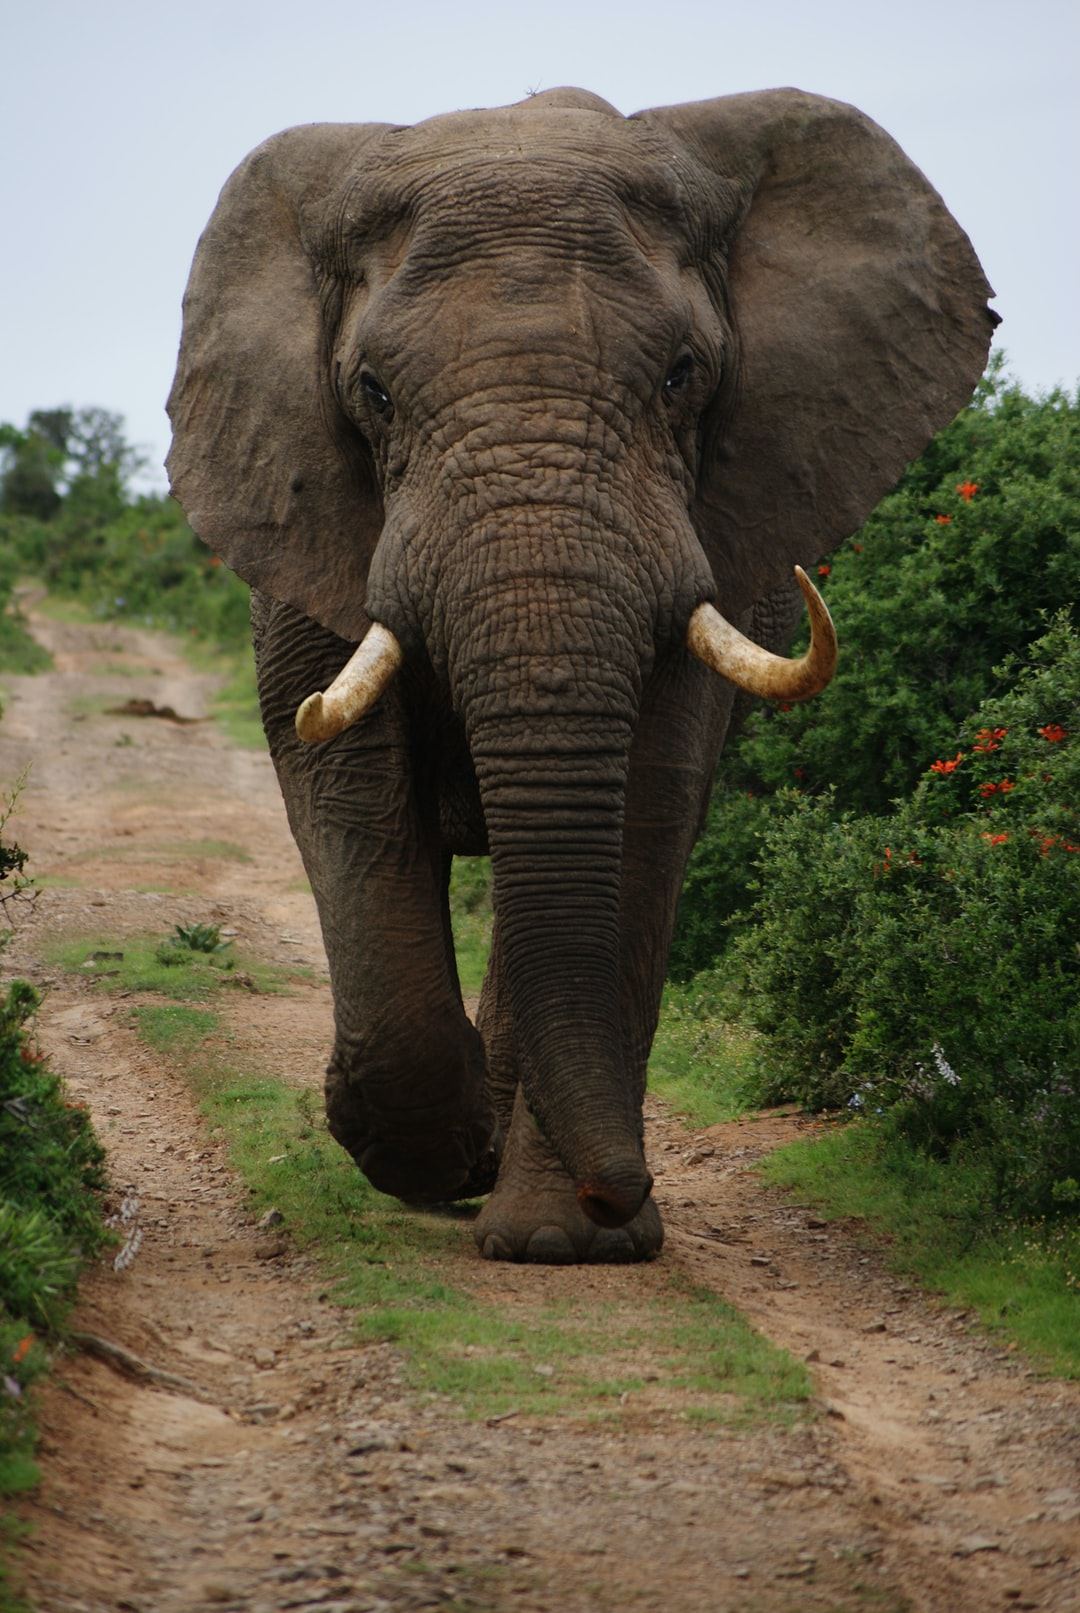 Elephant Pictures [HD] | Download Free Images & Stock Photos